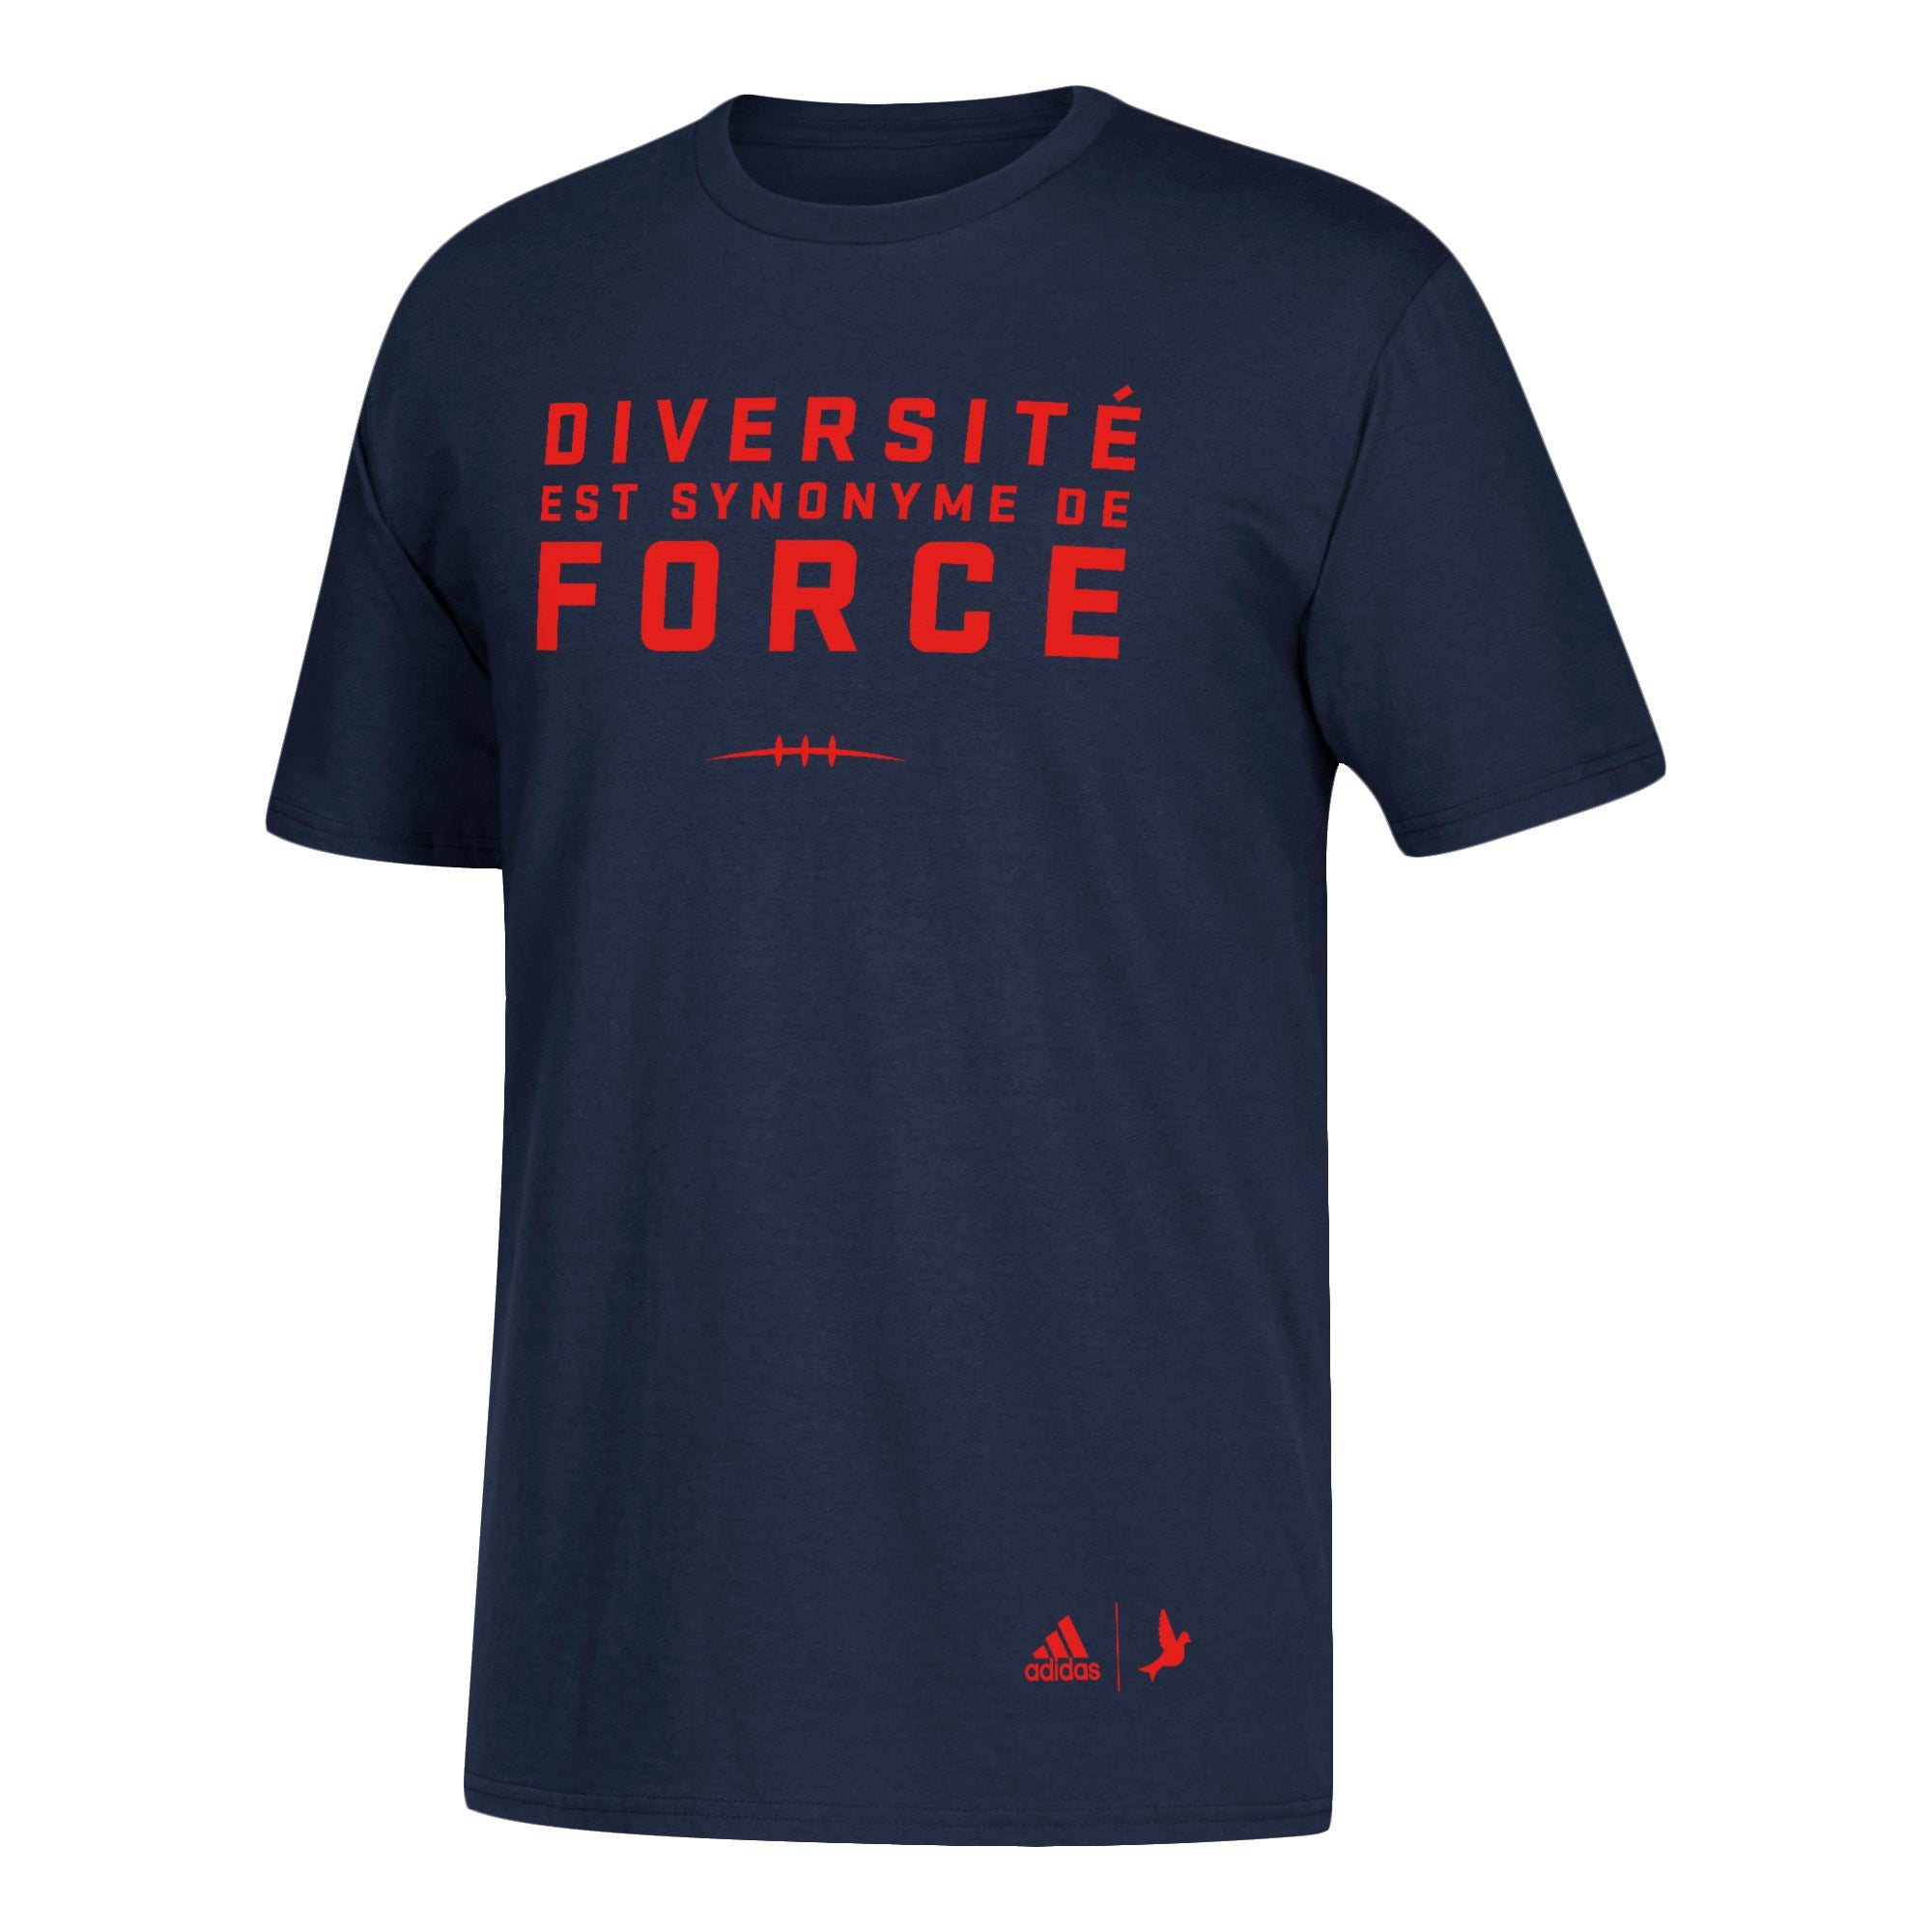 Montreal Alouettes Diversity is Strength Shirt